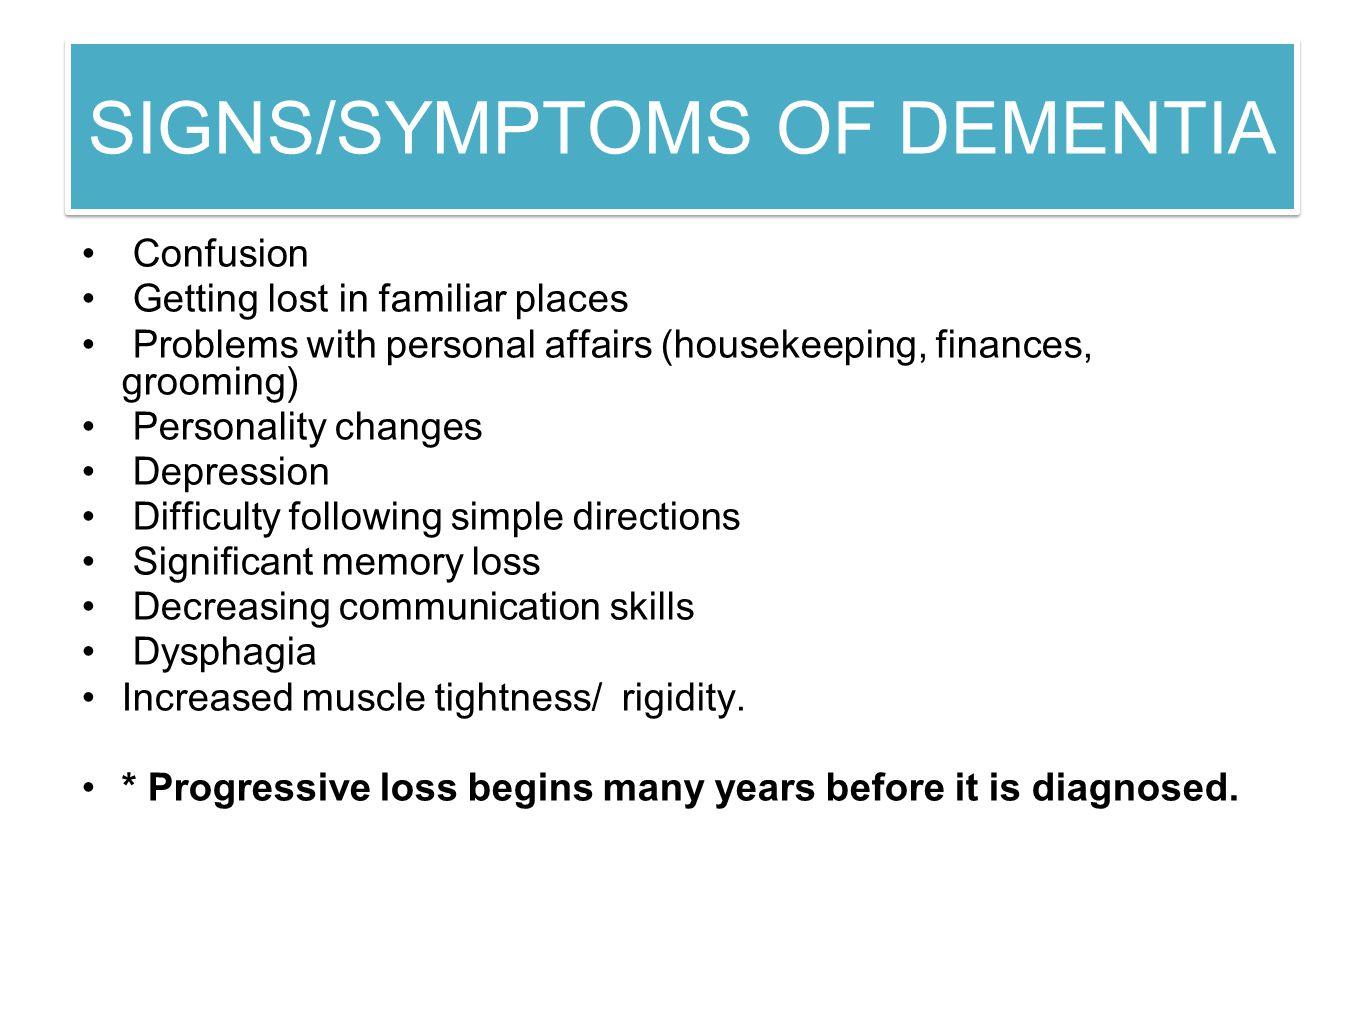 SIGNS/SYMPTOMS OF DEMENTIA Confusion Getting lost in familiar places Problems with personal affairs (housekeeping, finances, grooming) Personality changes Depression Difficulty following simple directions Significant memory loss Decreasing communication skills Dysphagia Increased muscle tightness/ rigidity.